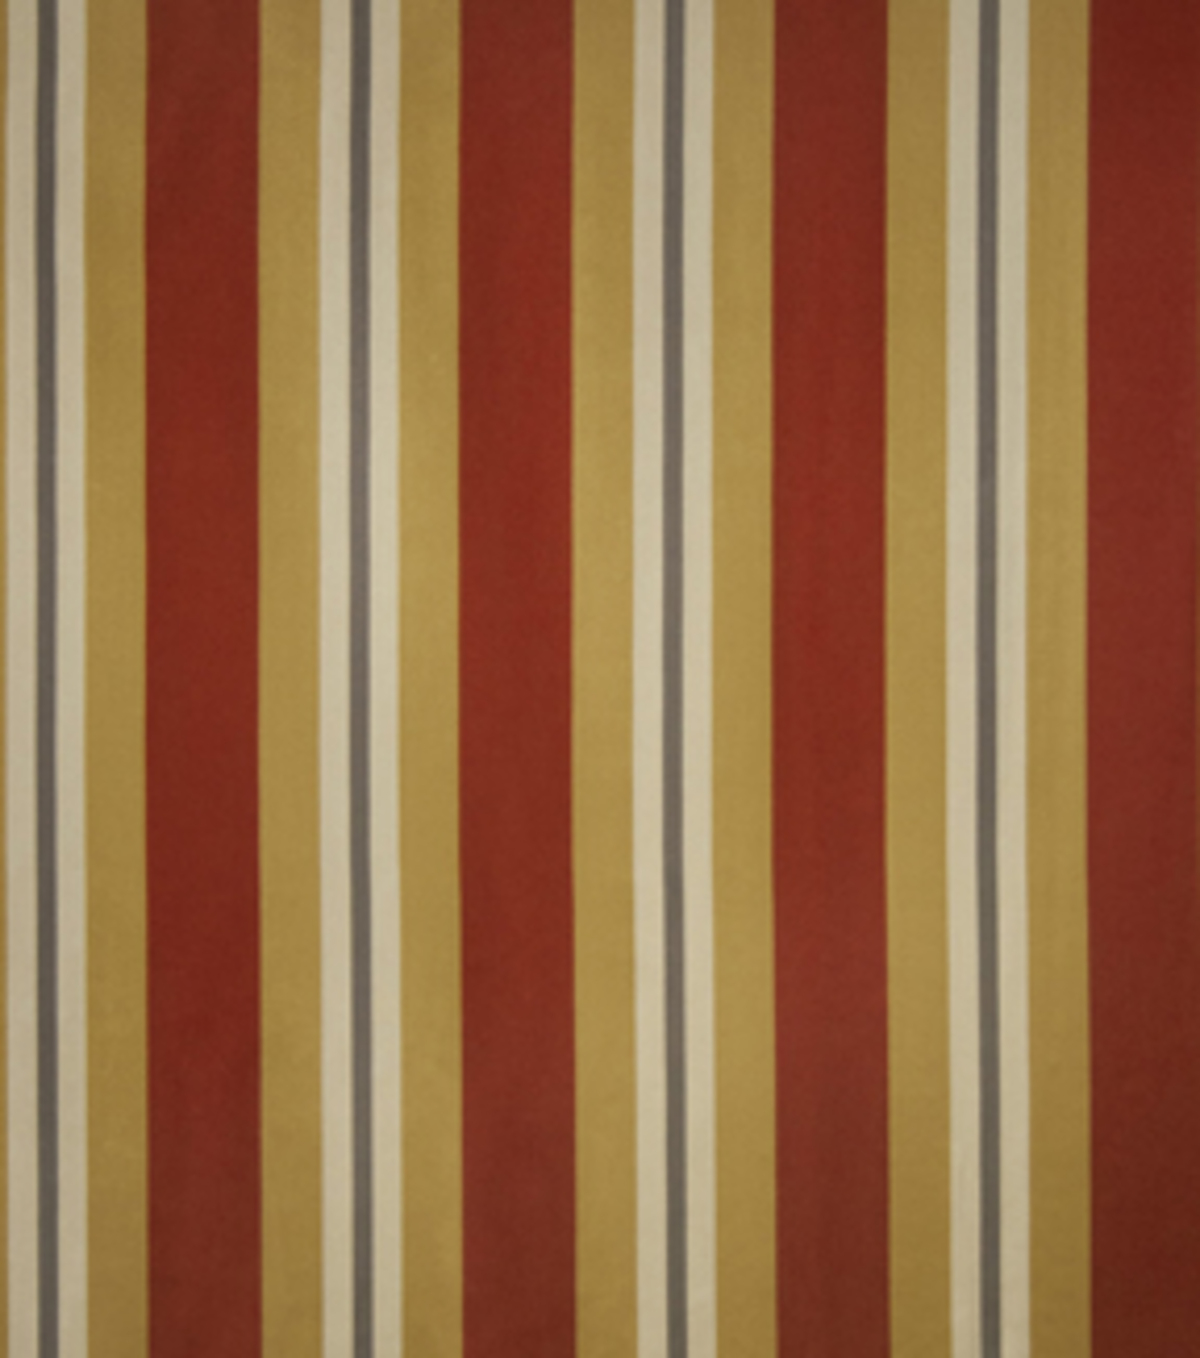 Home Decor 8\u0022x8\u0022 Fabric Swatch-Eaton Square Meaningful Paprika